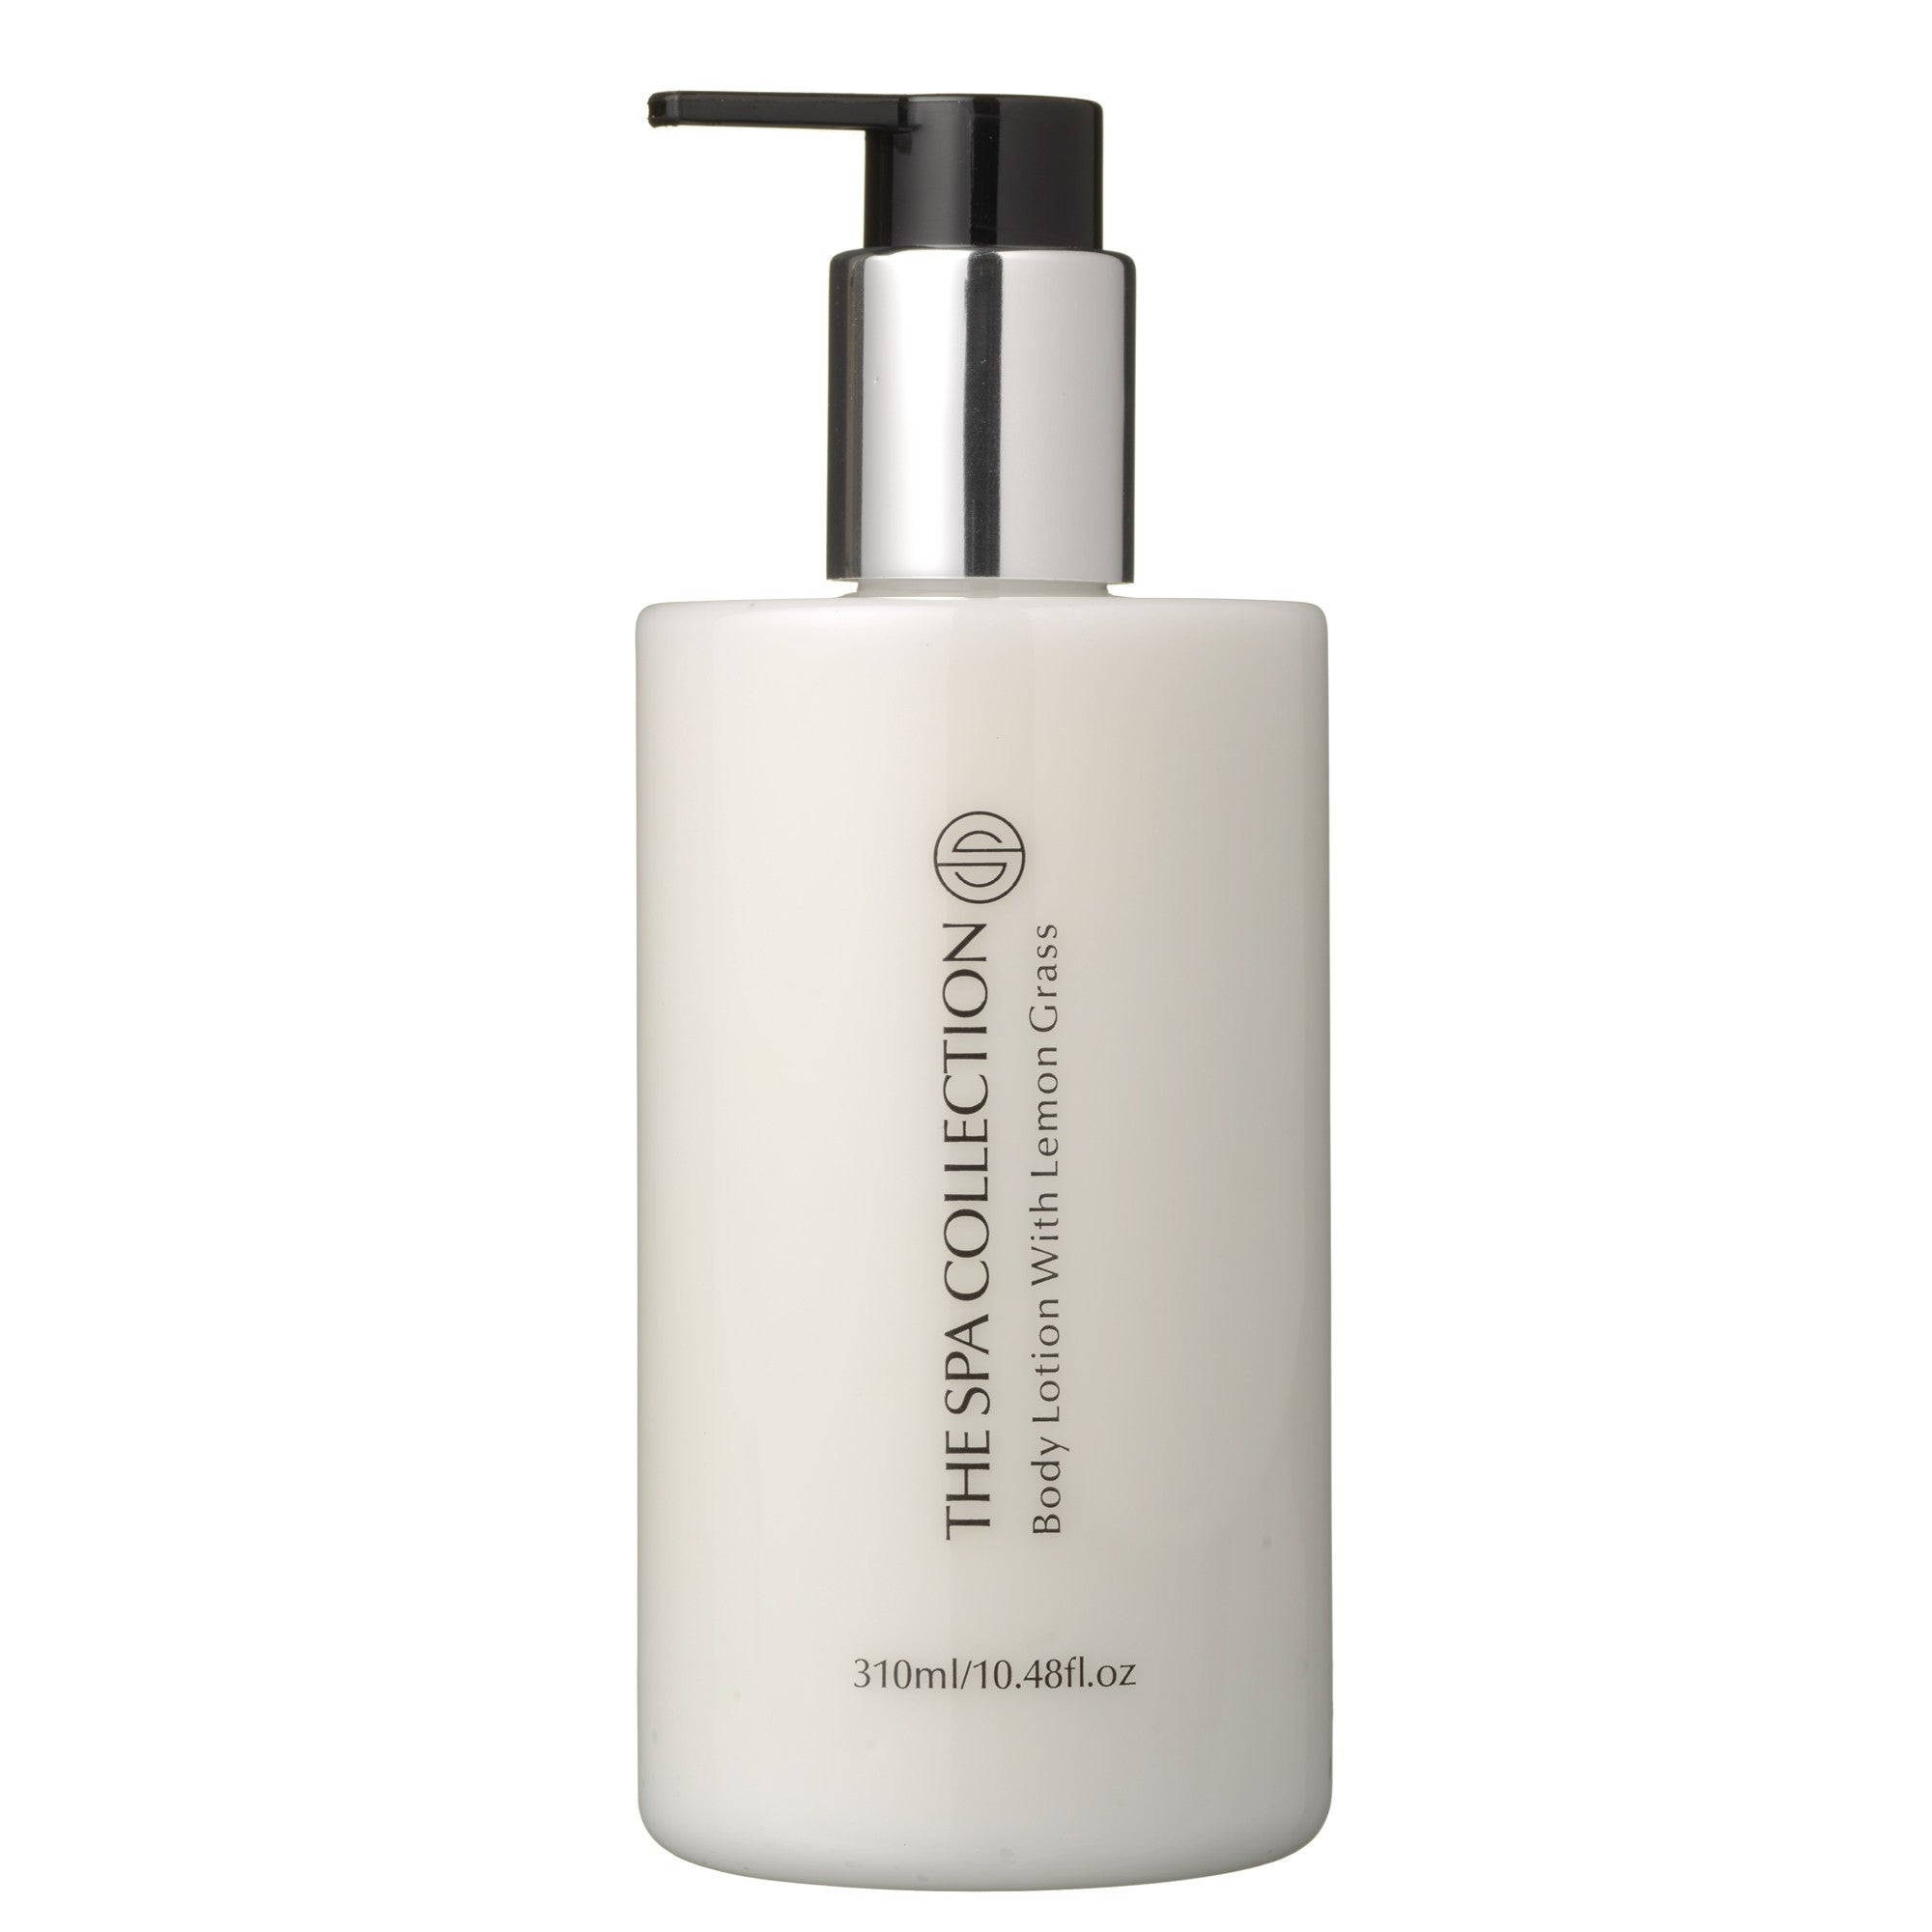 Bodylotion Lemongrass 310 ml - The Spa Collection